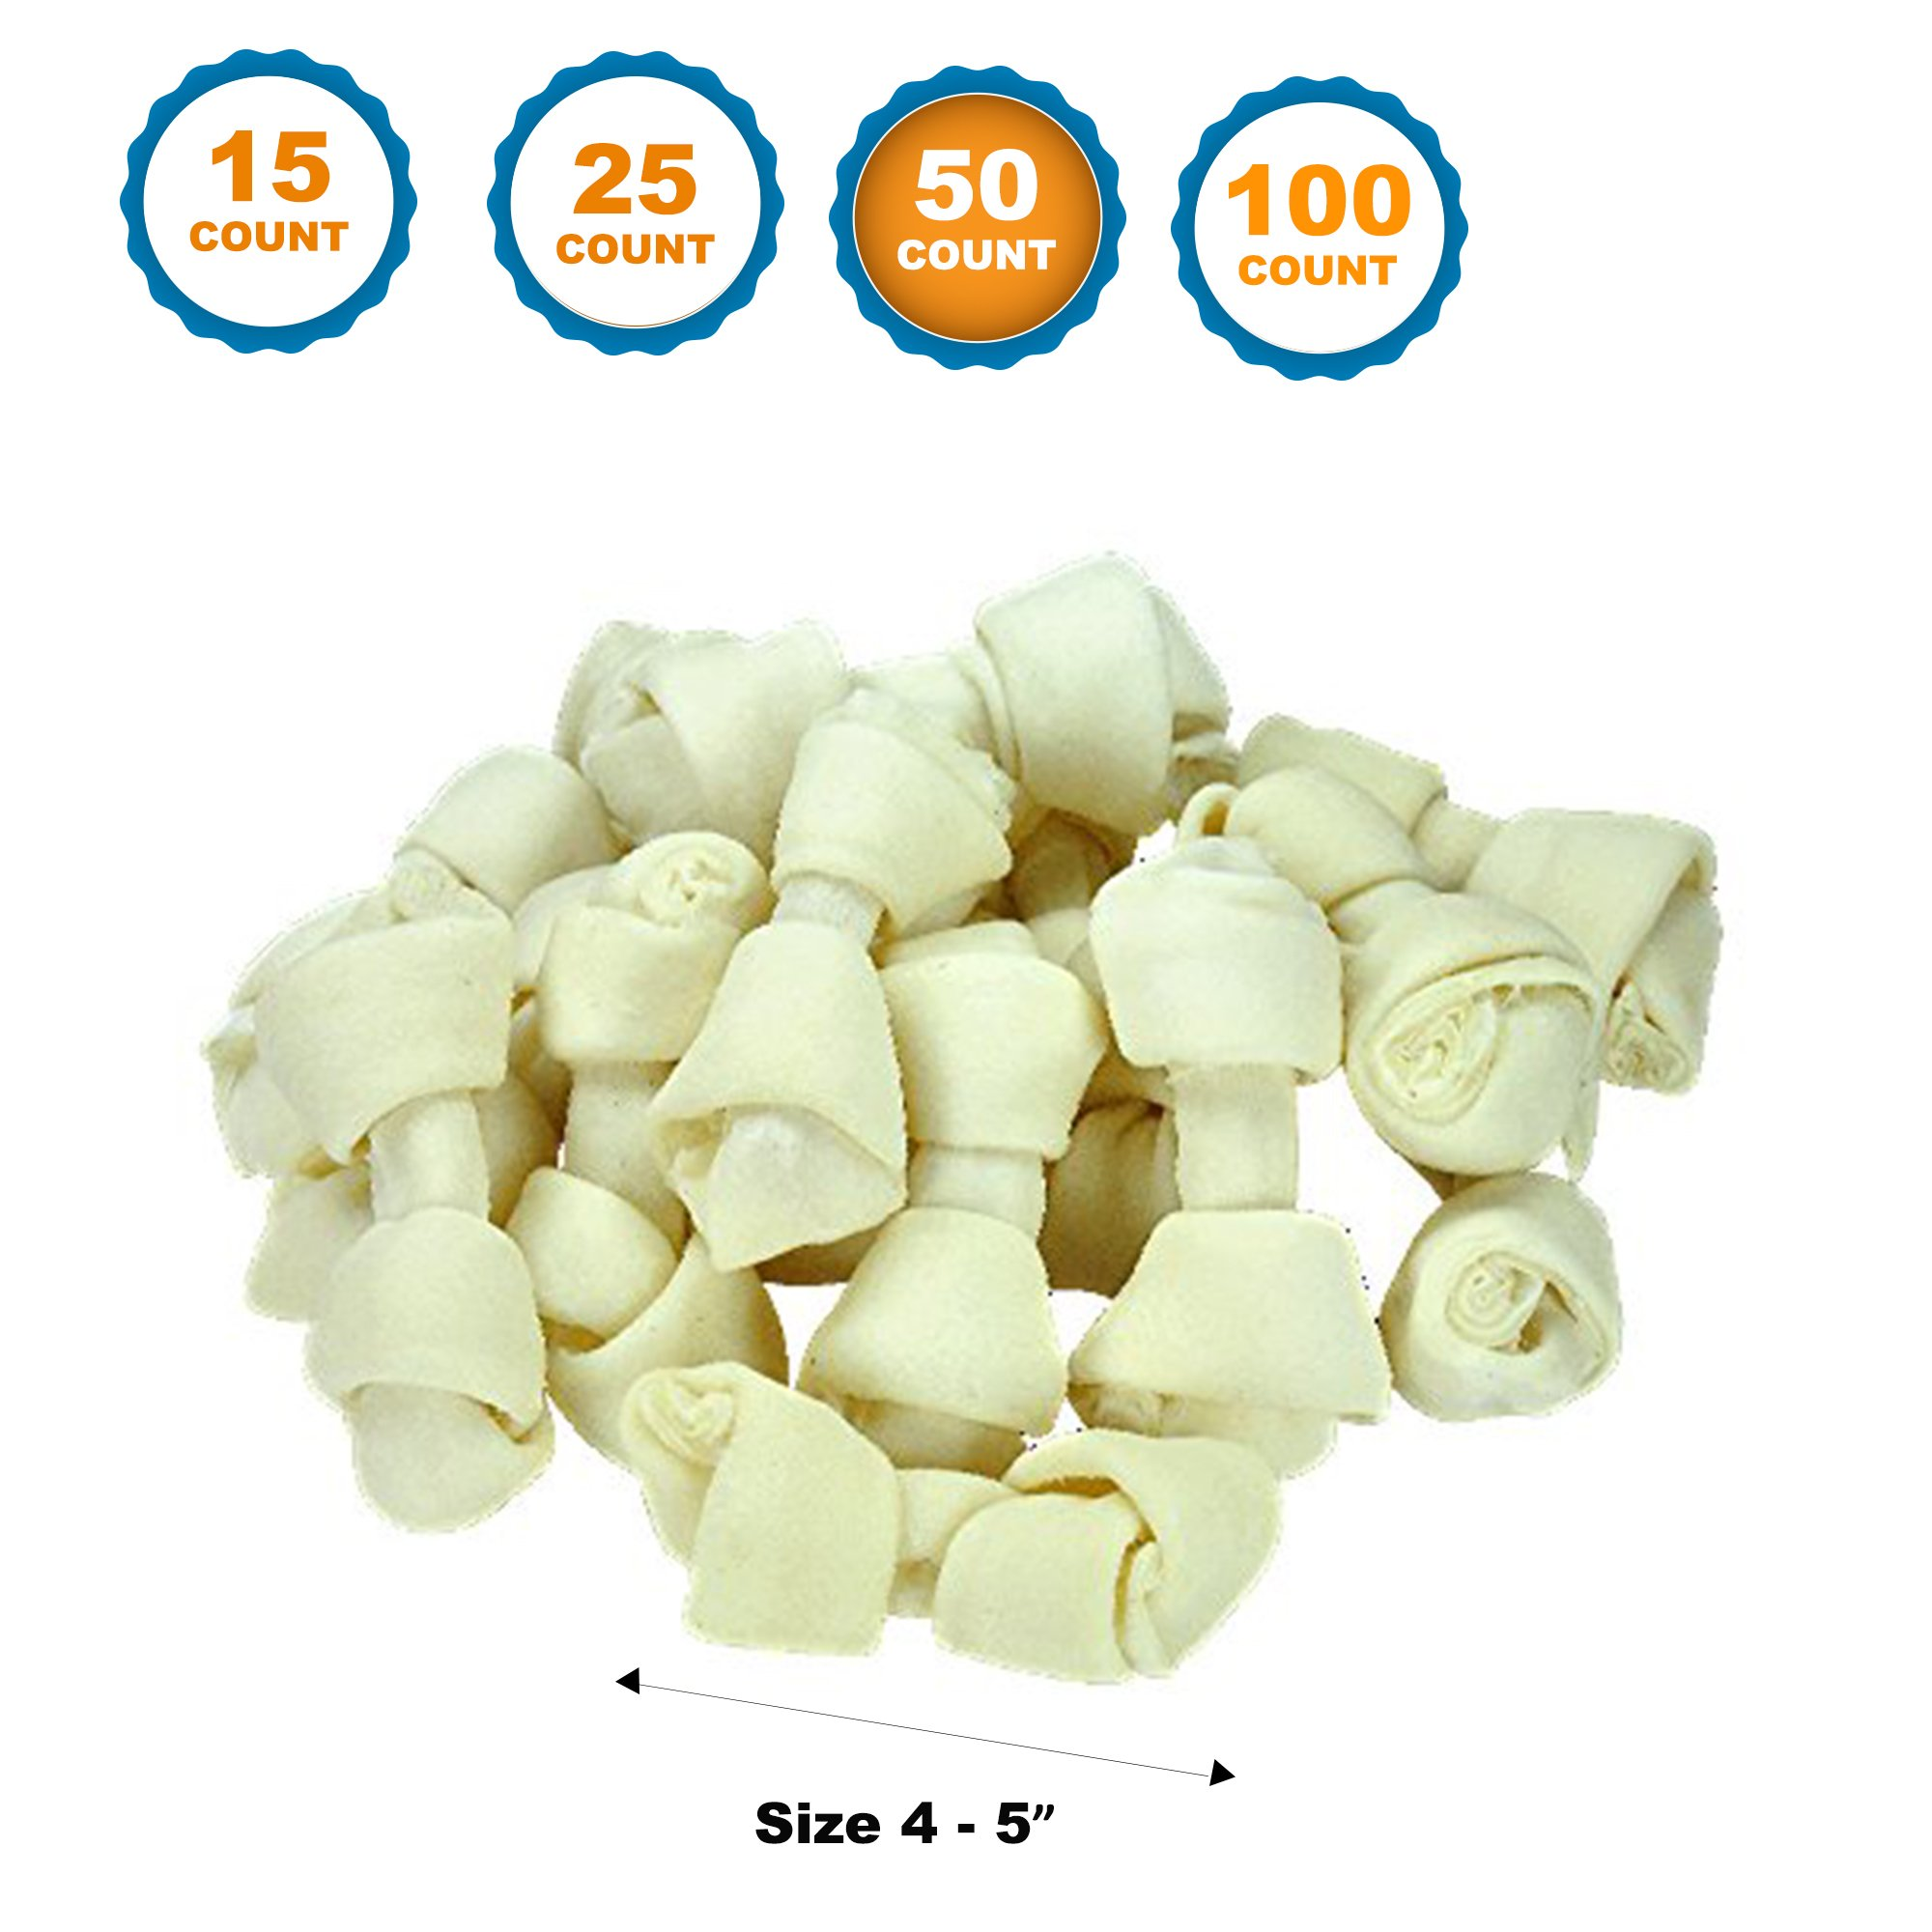 123 Treats 4-5 inch Rawhide Bones for Dogs | Premium Rawhide Bone Chews | Free Range Grass Fed Cattle with No Hormones, Additives or Chemicals (50) by 123 Treats